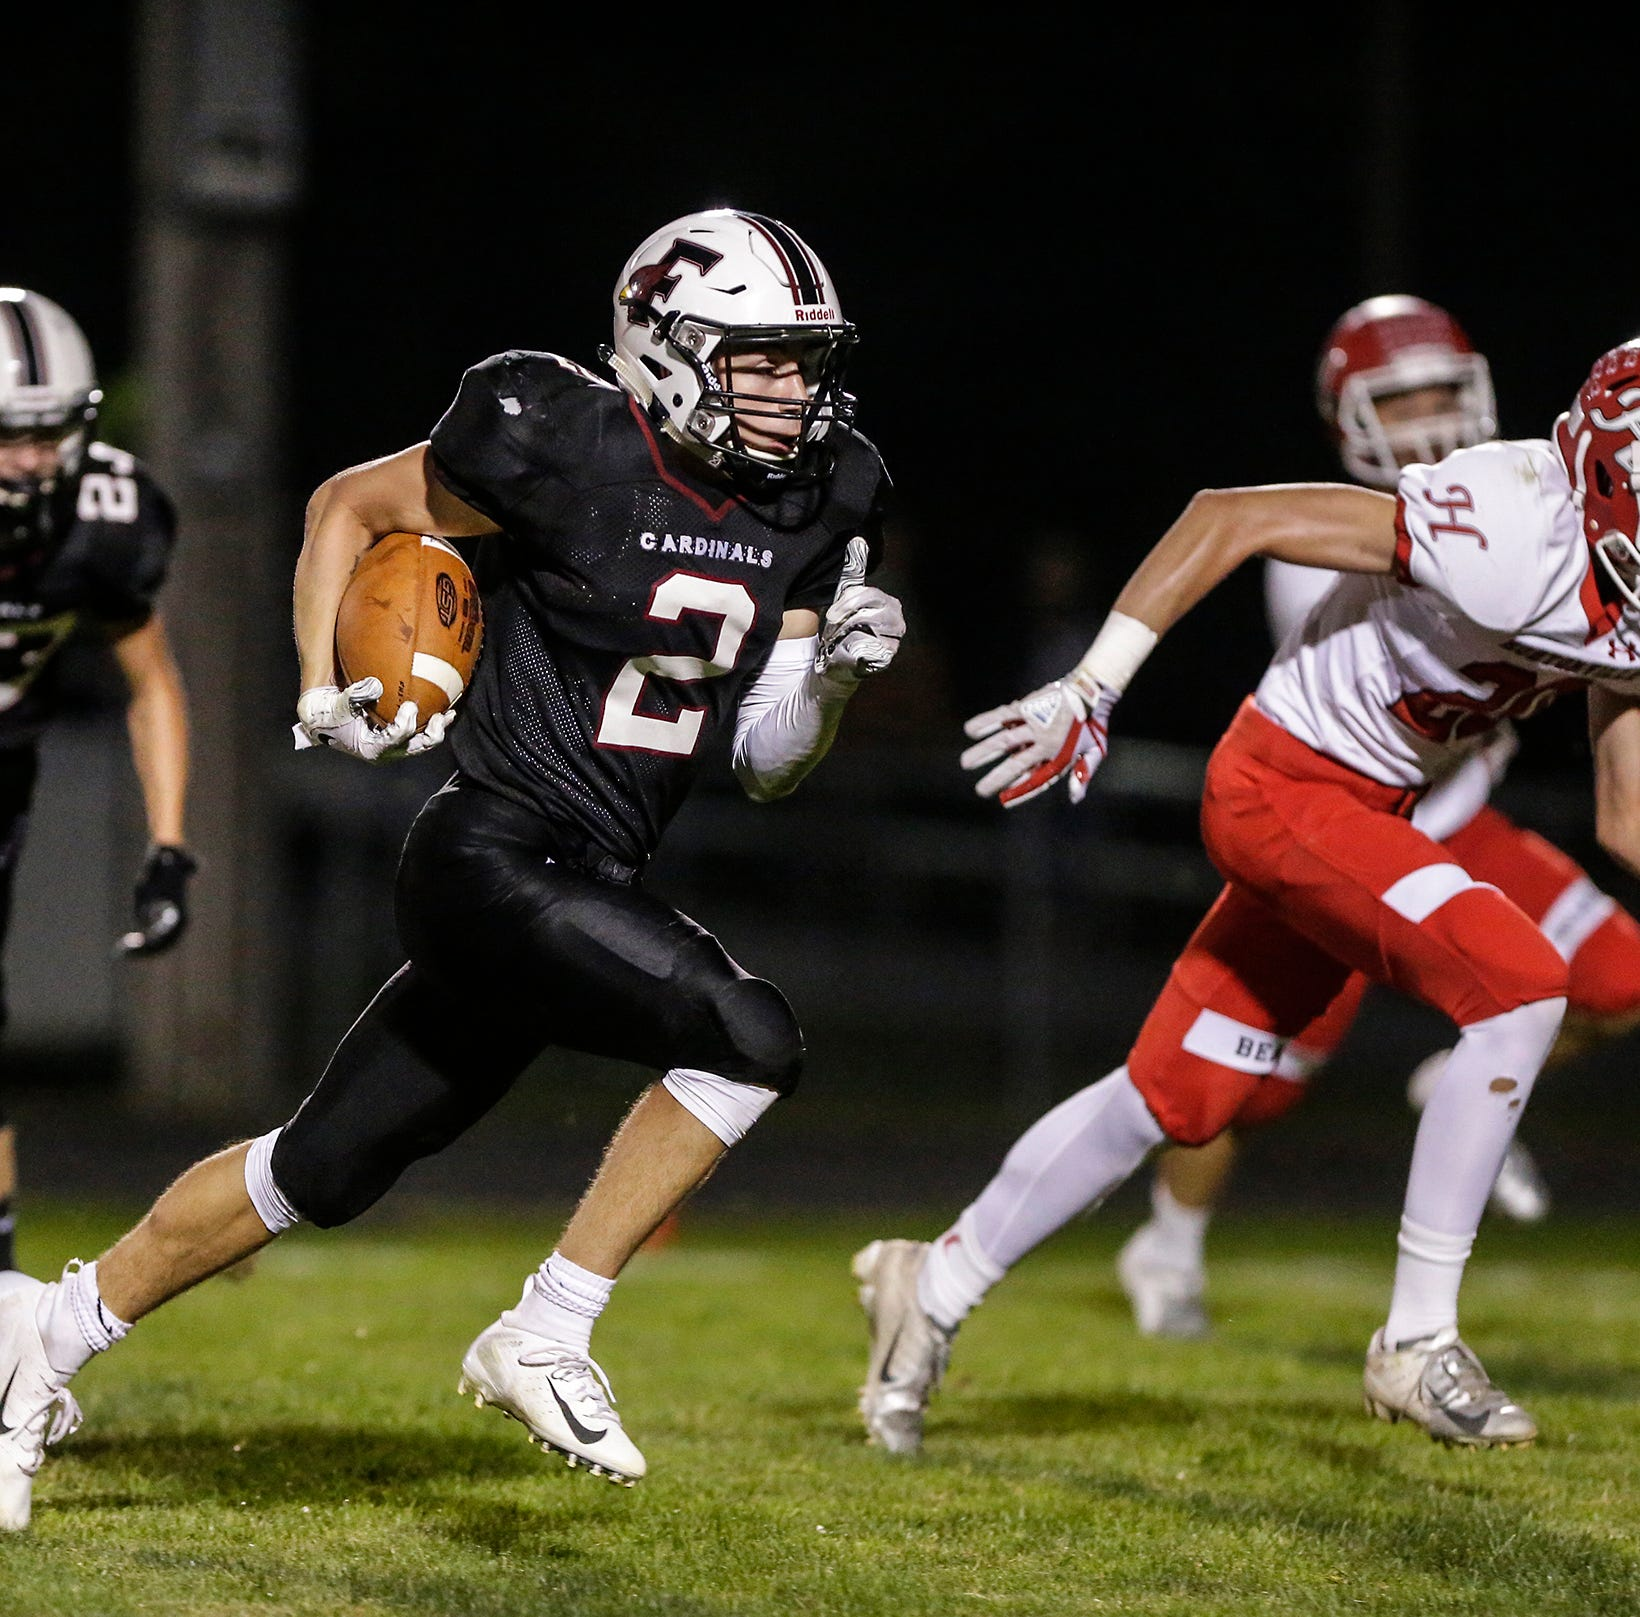 High school football: No. 1 Fond du Lac focuses on finishing strong